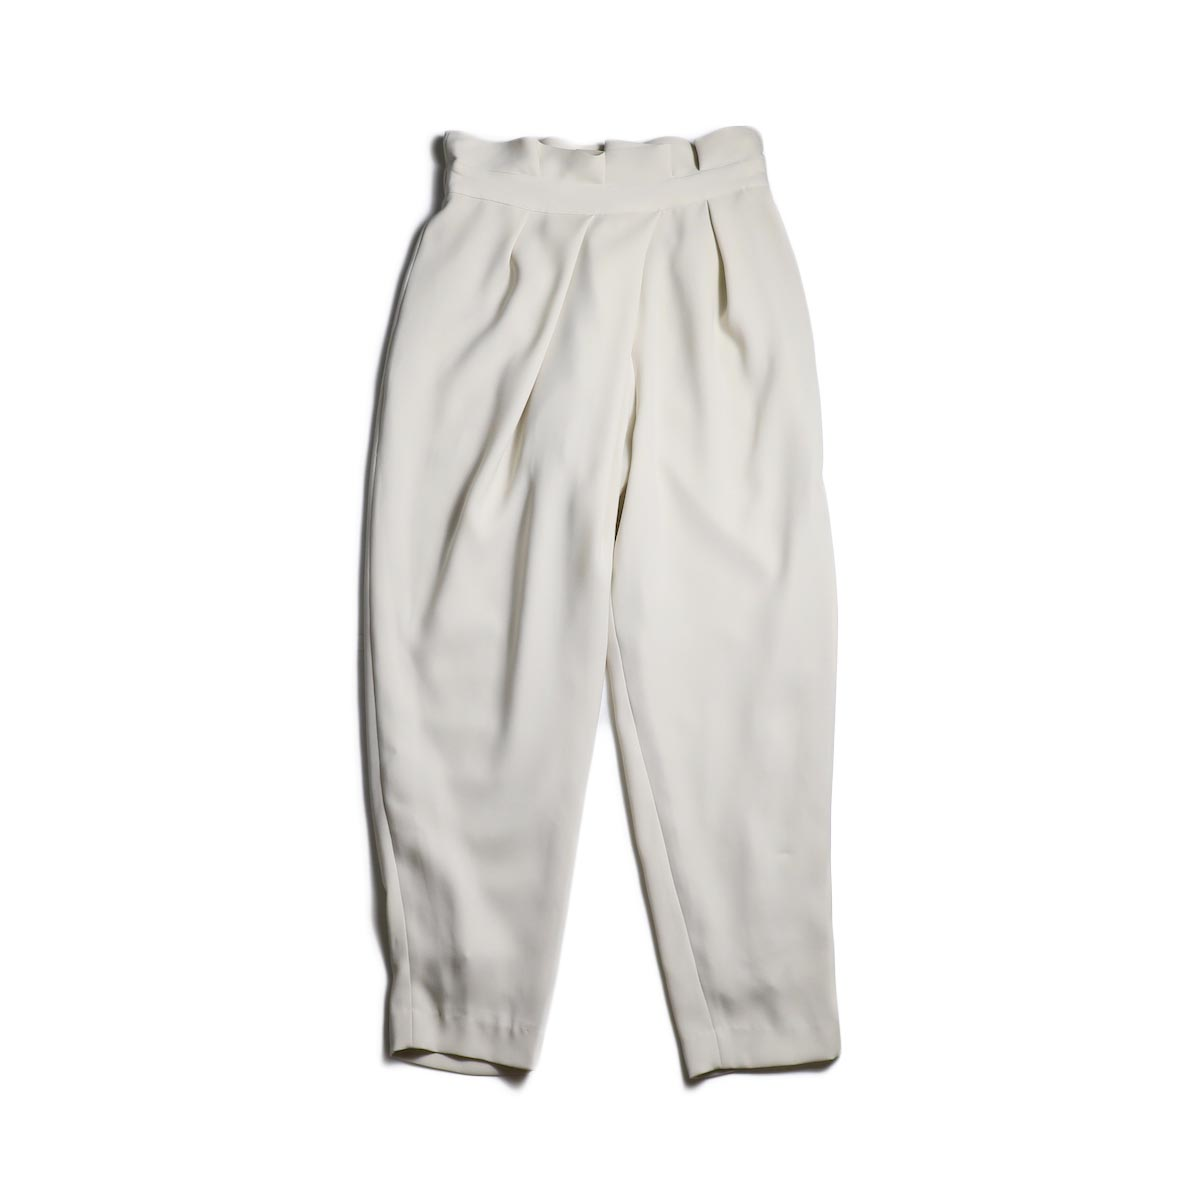 WHYTO. / Double Cloth Satin Tapered Trousers (Lt.Beige)